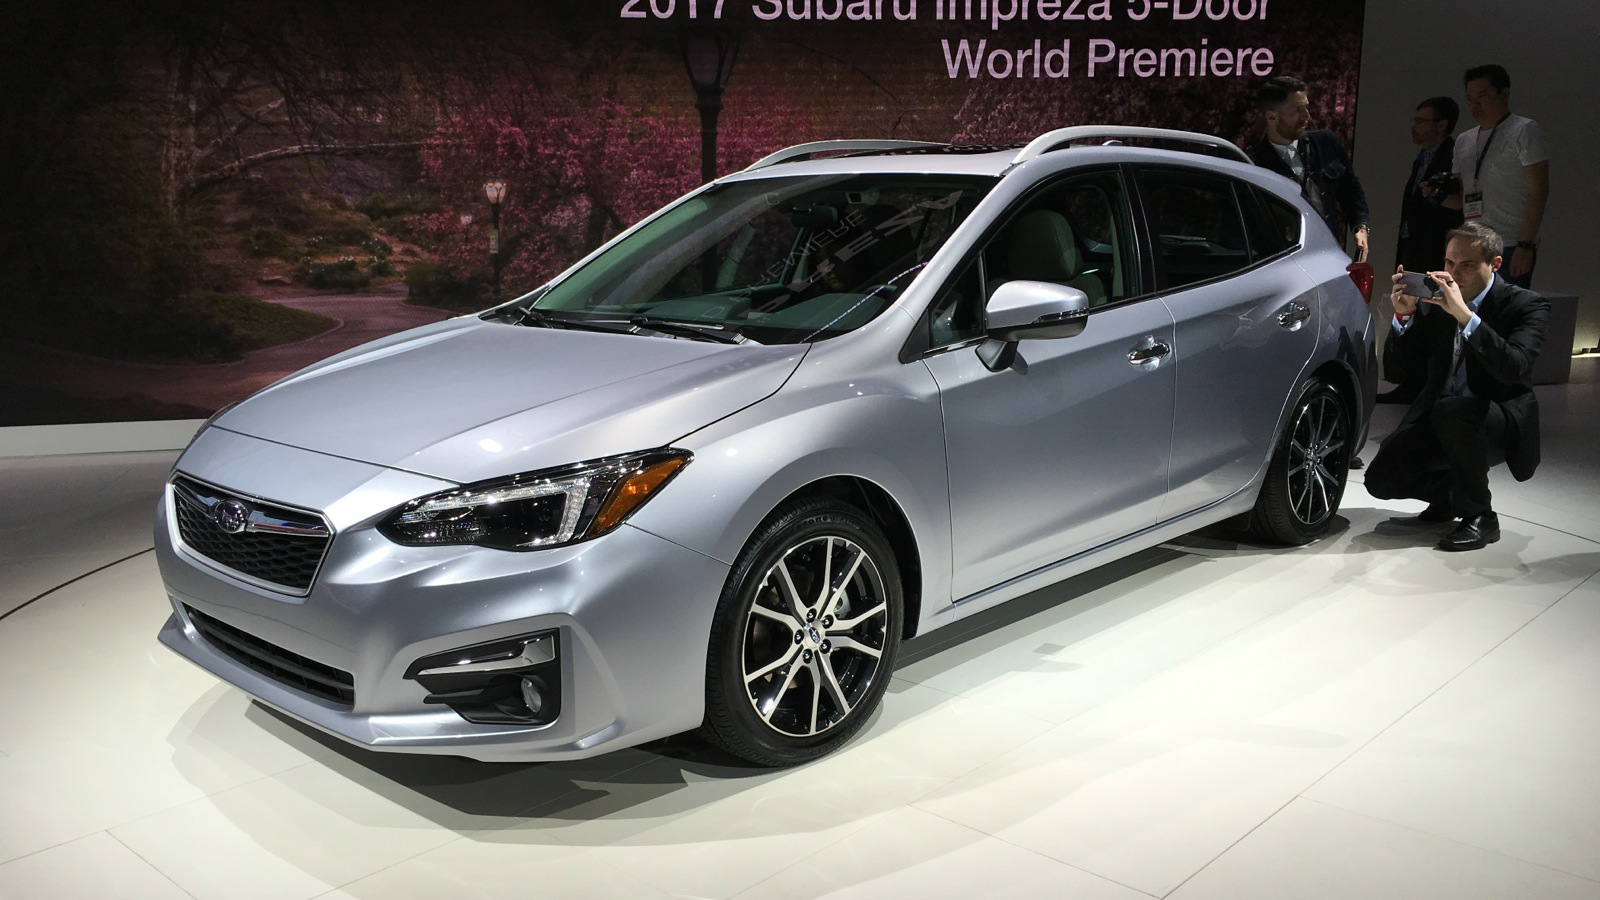 2017 subaru impreza hatch and sedan gallery photos. Black Bedroom Furniture Sets. Home Design Ideas